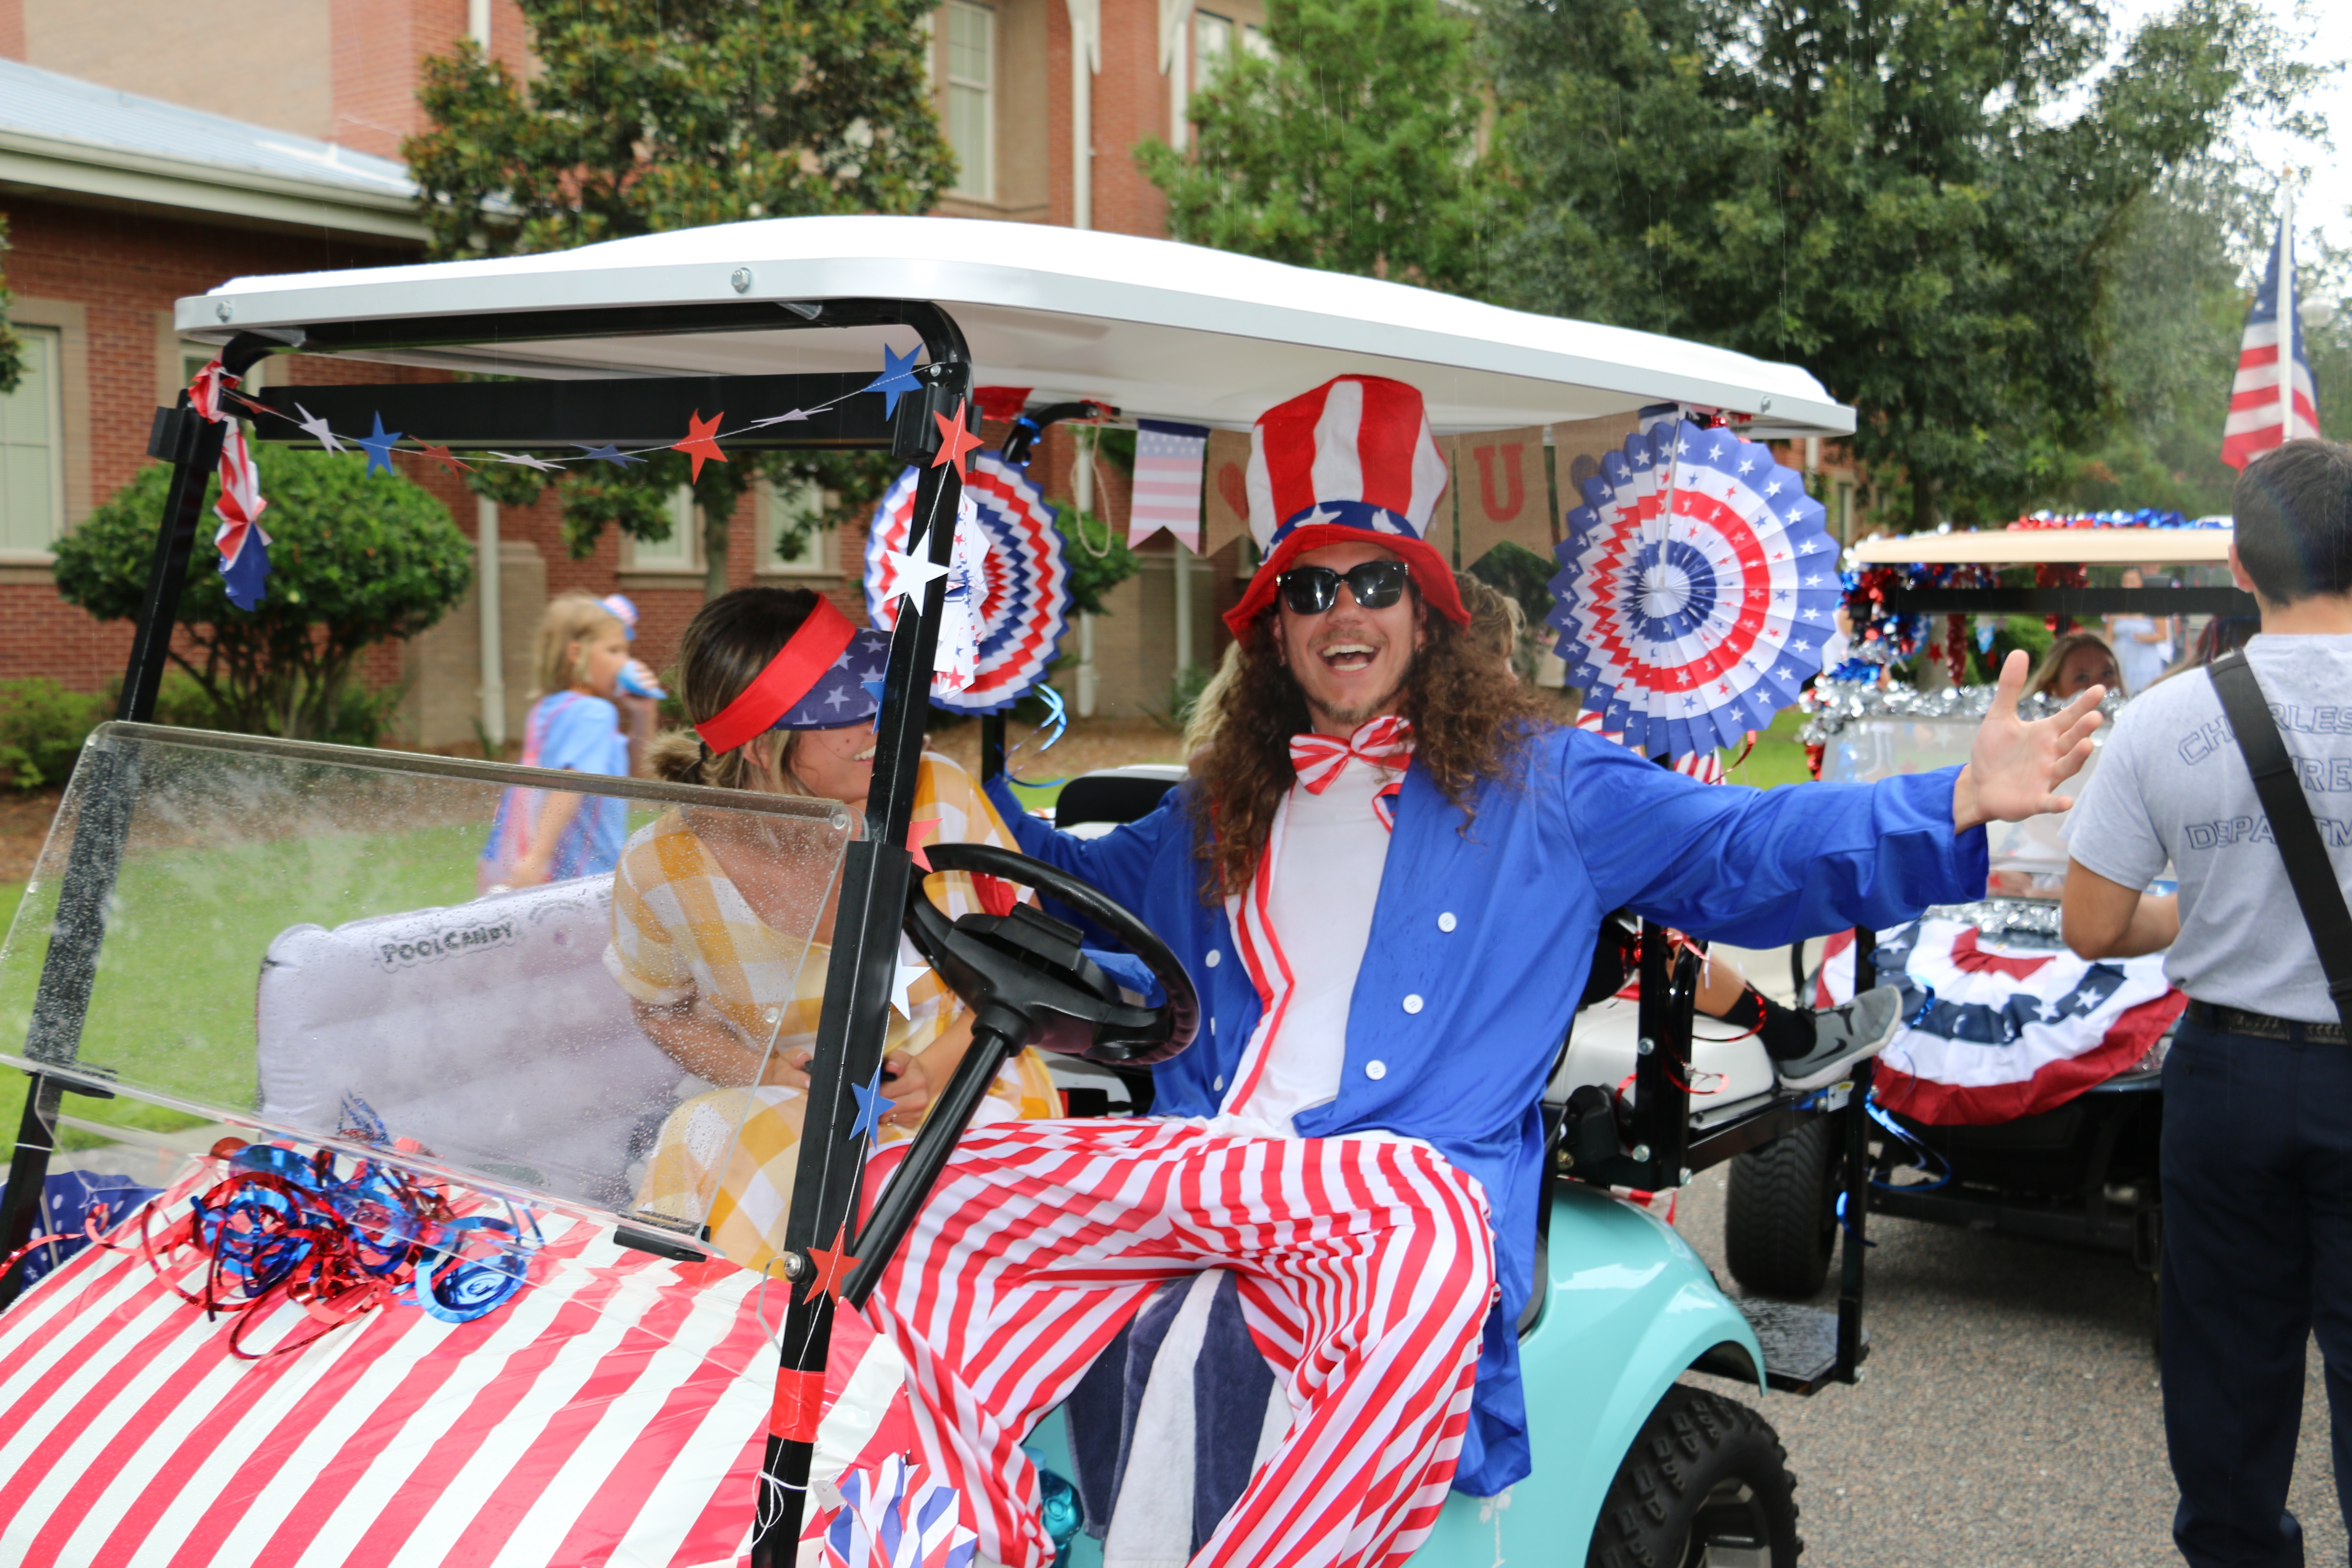 The Daniel Island Golf Cart and Bike Parade was held July 2 at the Daniel Island School. Nearly 80 golf carts and 20 bikes participated in the event. Daniel Island residents Brandon and  Brittany Lake won for best decorated cart and Carolina Beaty won for best decorated bike.